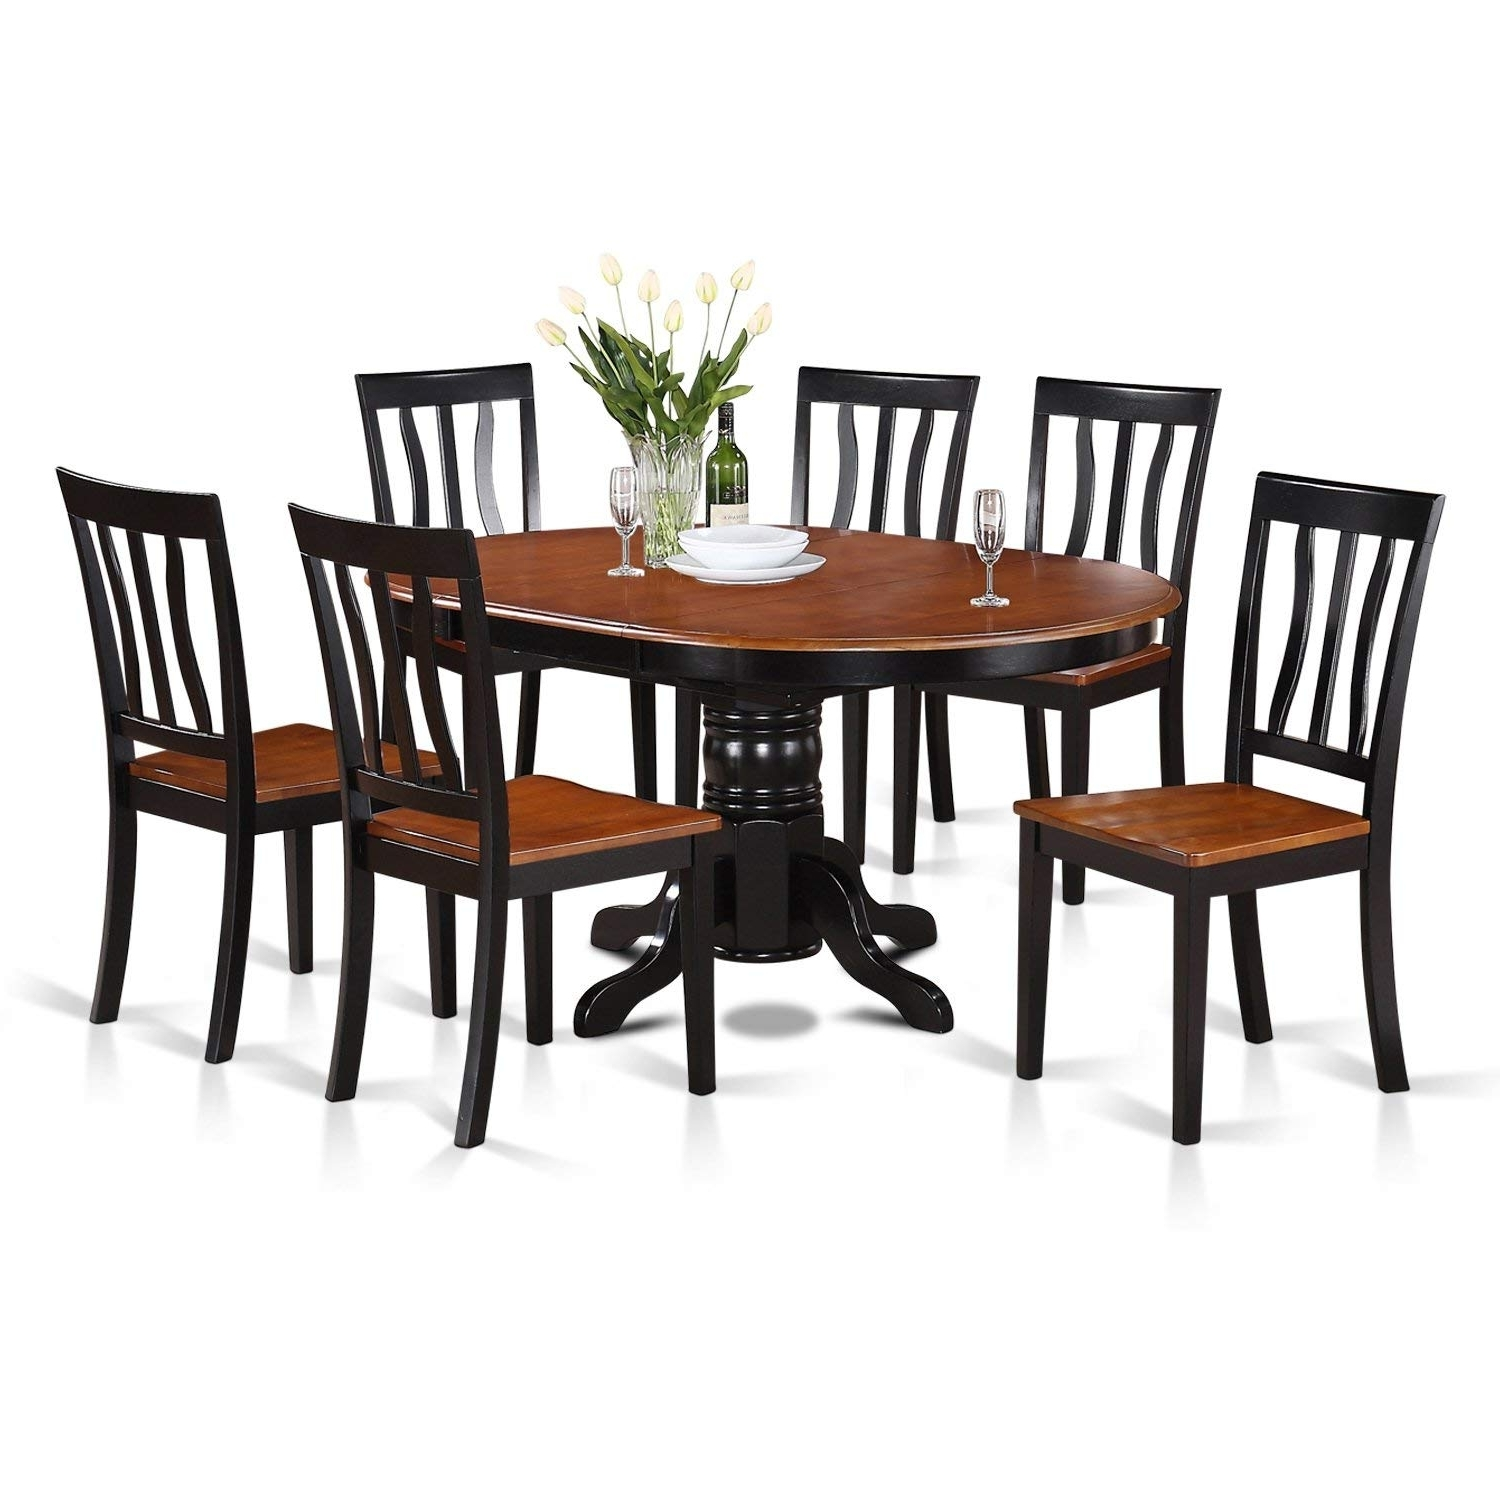 Jaxon Grey 6 Piece Rectangle Extension Dining Sets With Bench & Uph Chairs For 2017 Amazon: East West Furniture Avat7 Blk W 7 Piece Dining Table Set (Gallery 11 of 25)